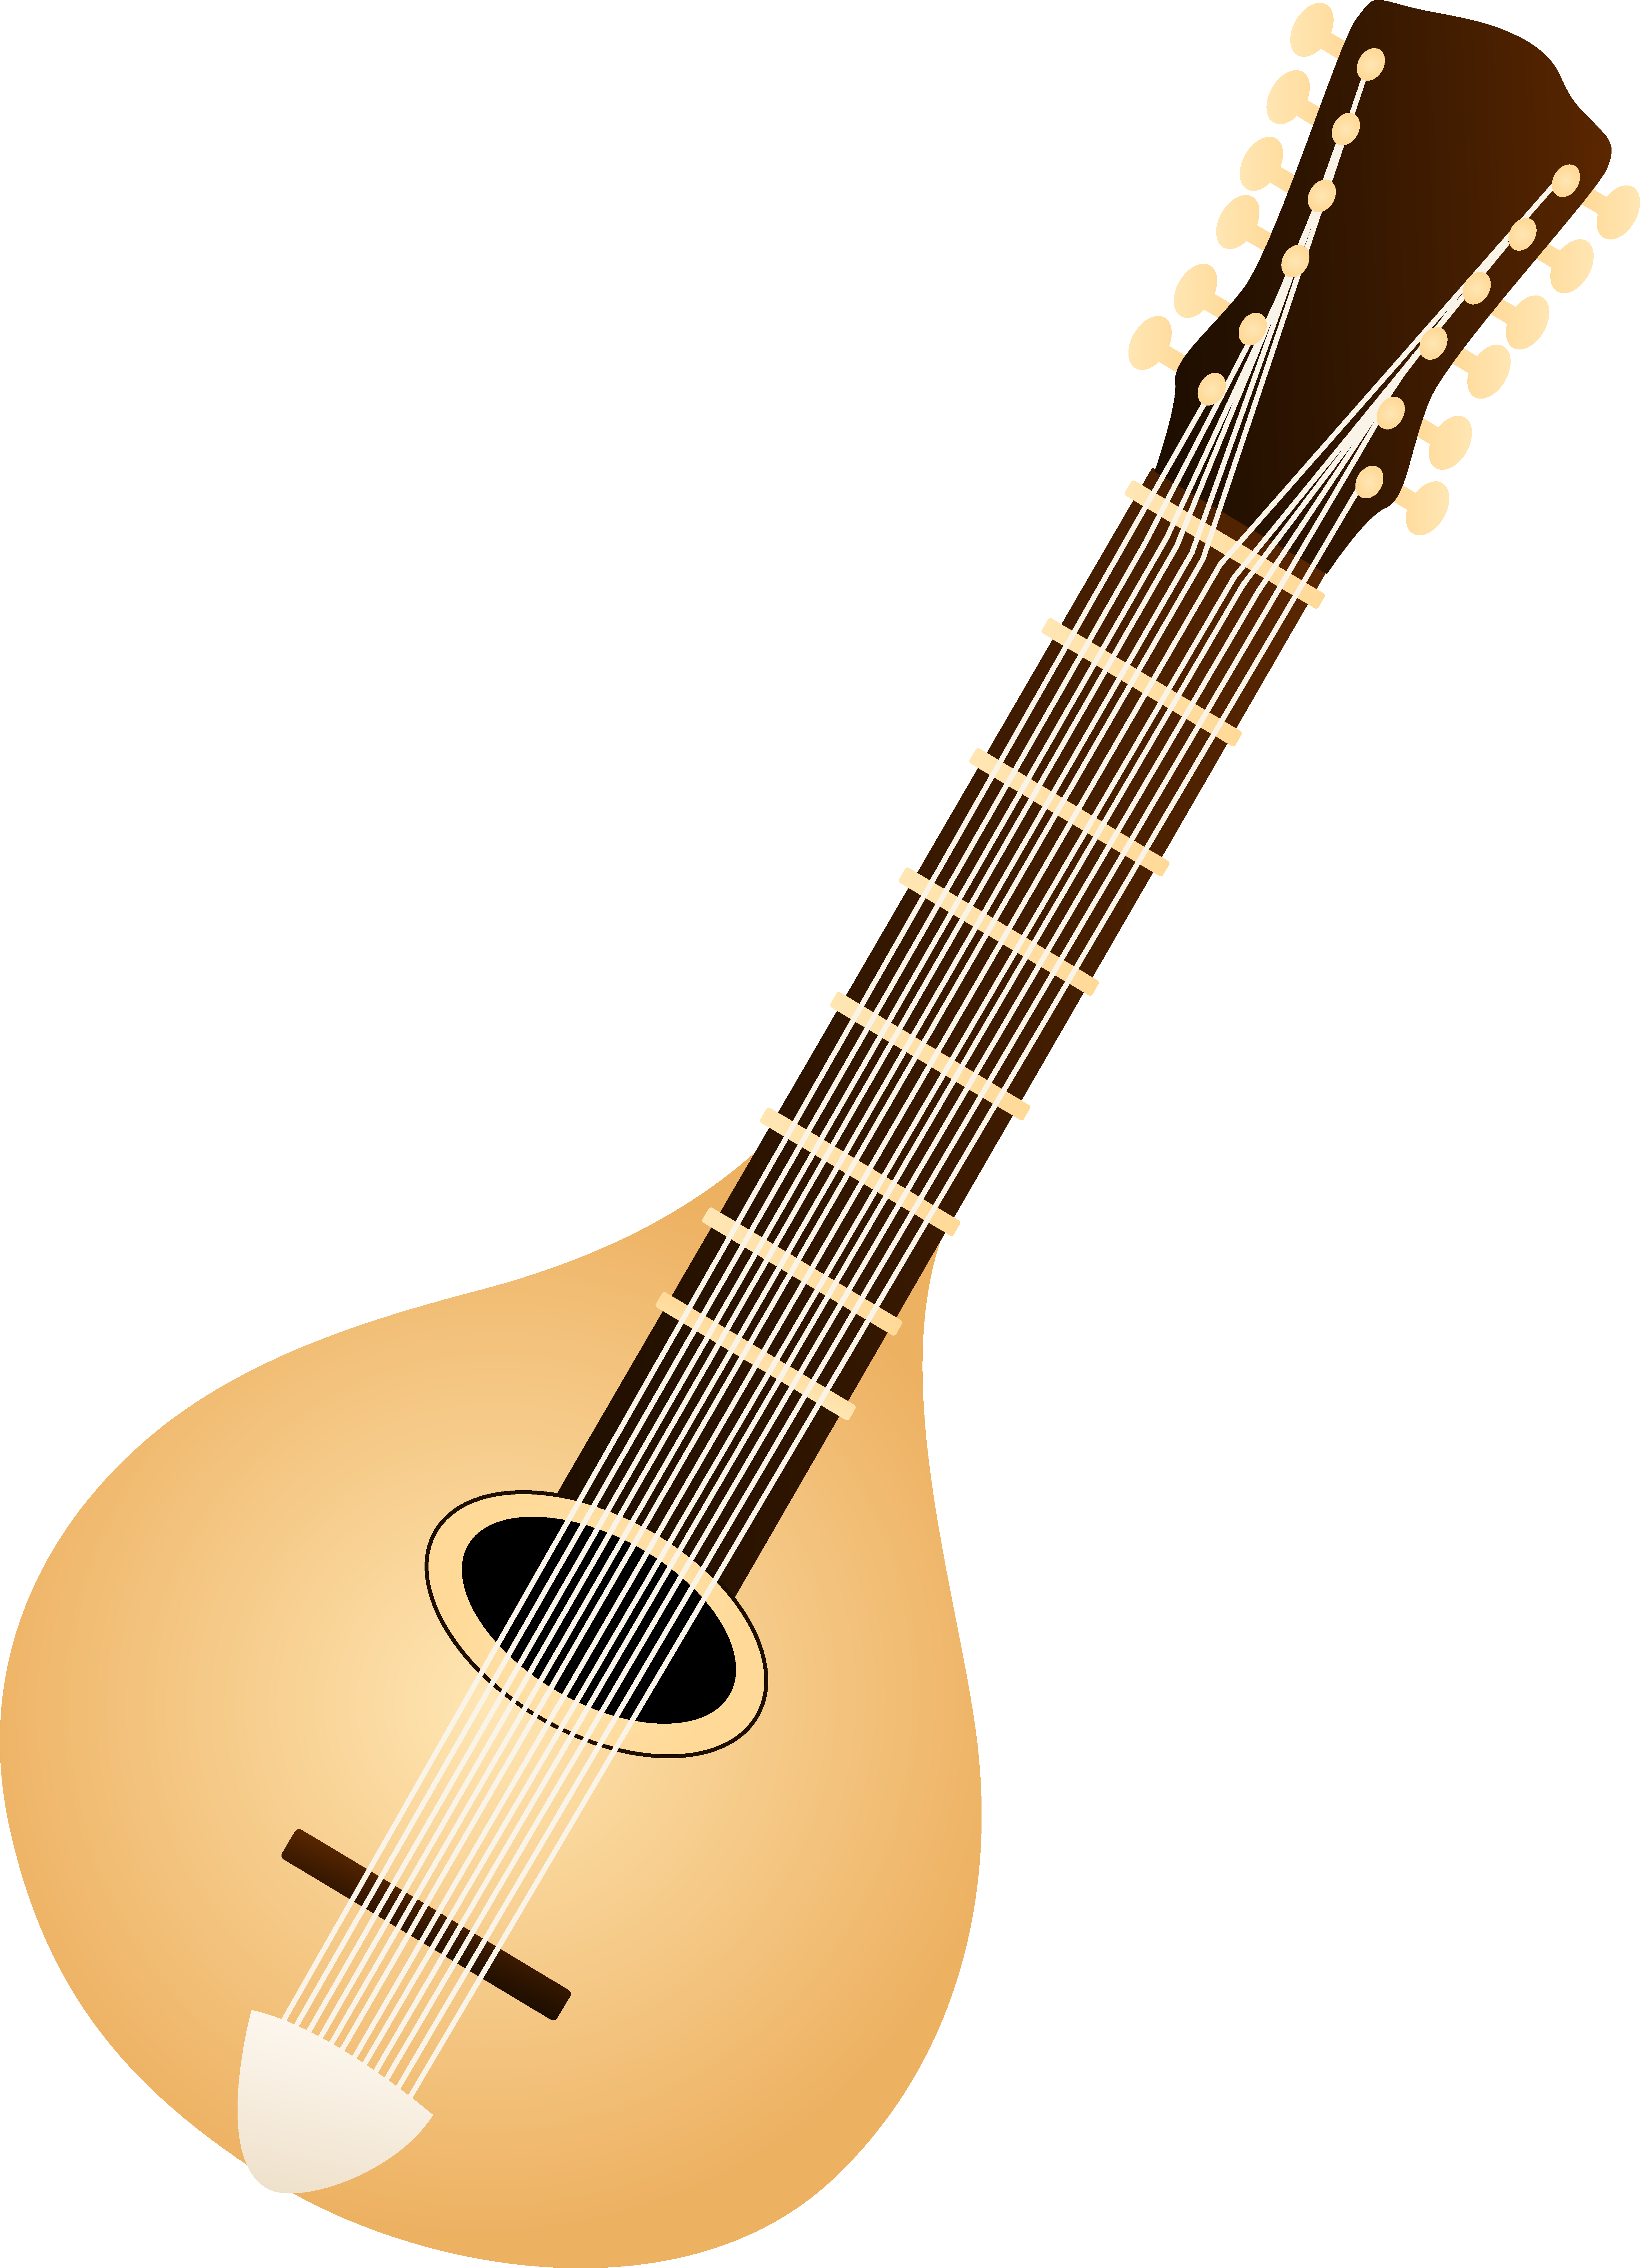 Clipart music country. Mandolin at getdrawings com